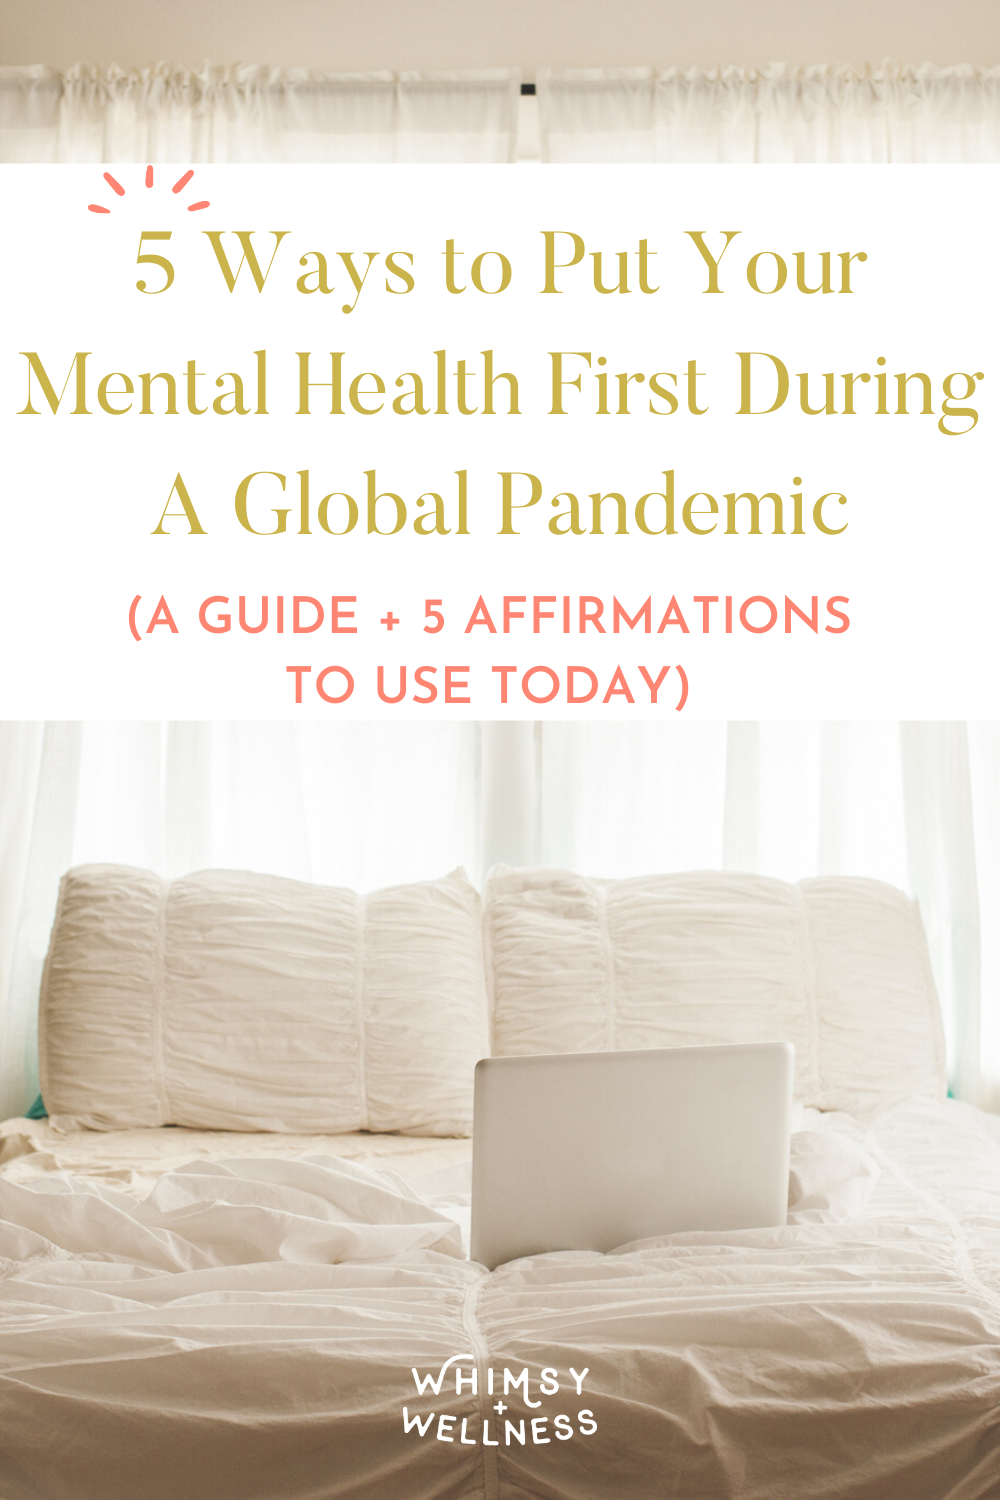 5 Ways to Put Your Mental Health First During a Global Pandemic (A guide + 5 affirmations to use today)